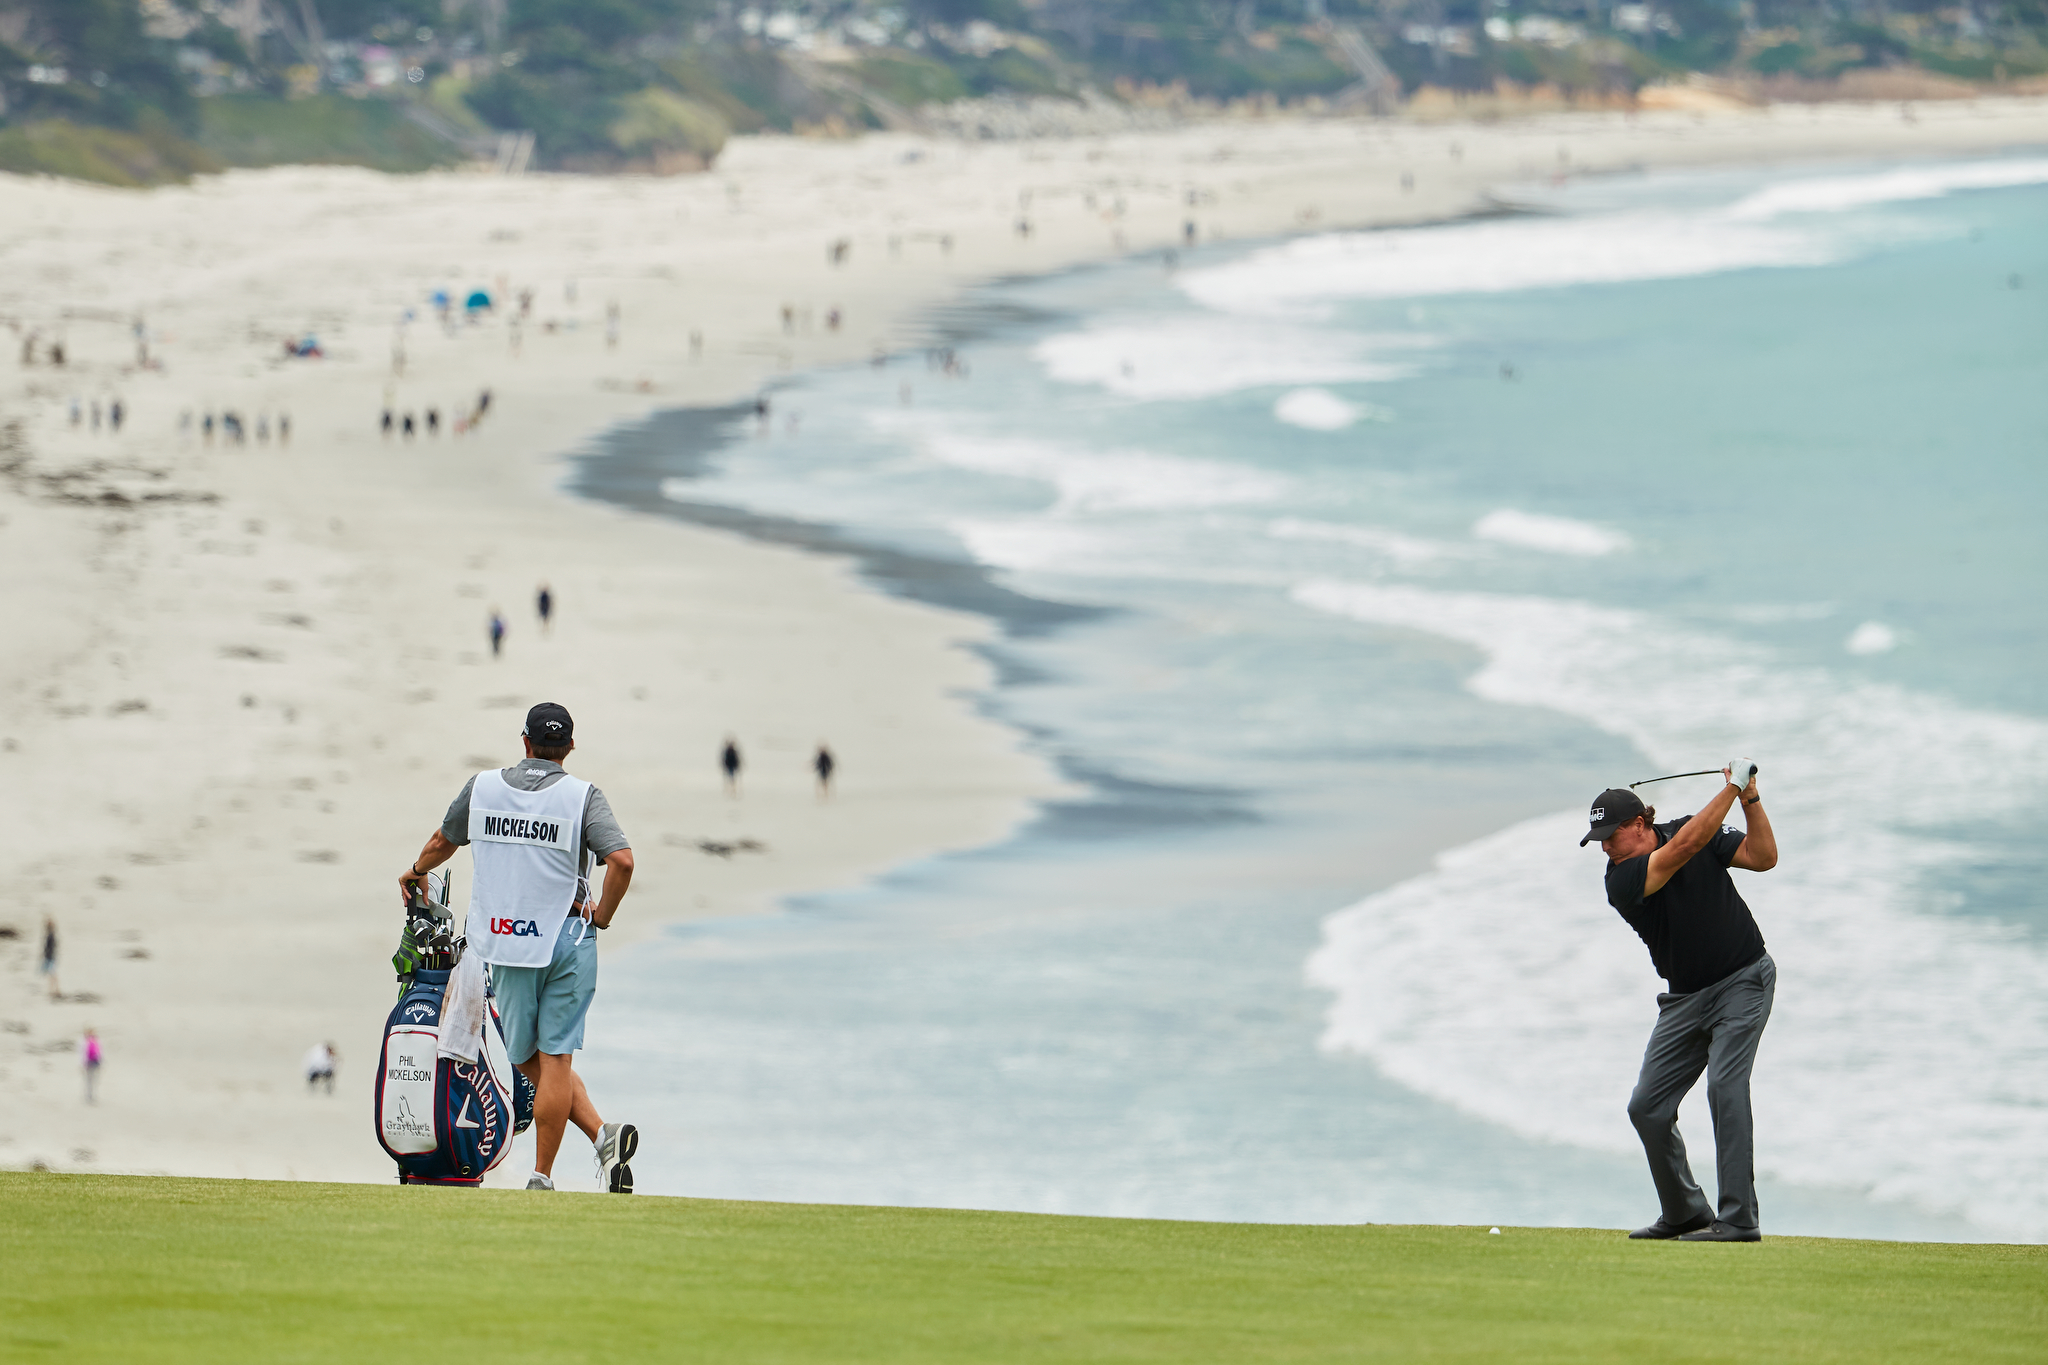 Phil Mickelson in the 9th fairway during Thursday's first round.  Canon 1DXM2, EF 200-400mm f4 L.